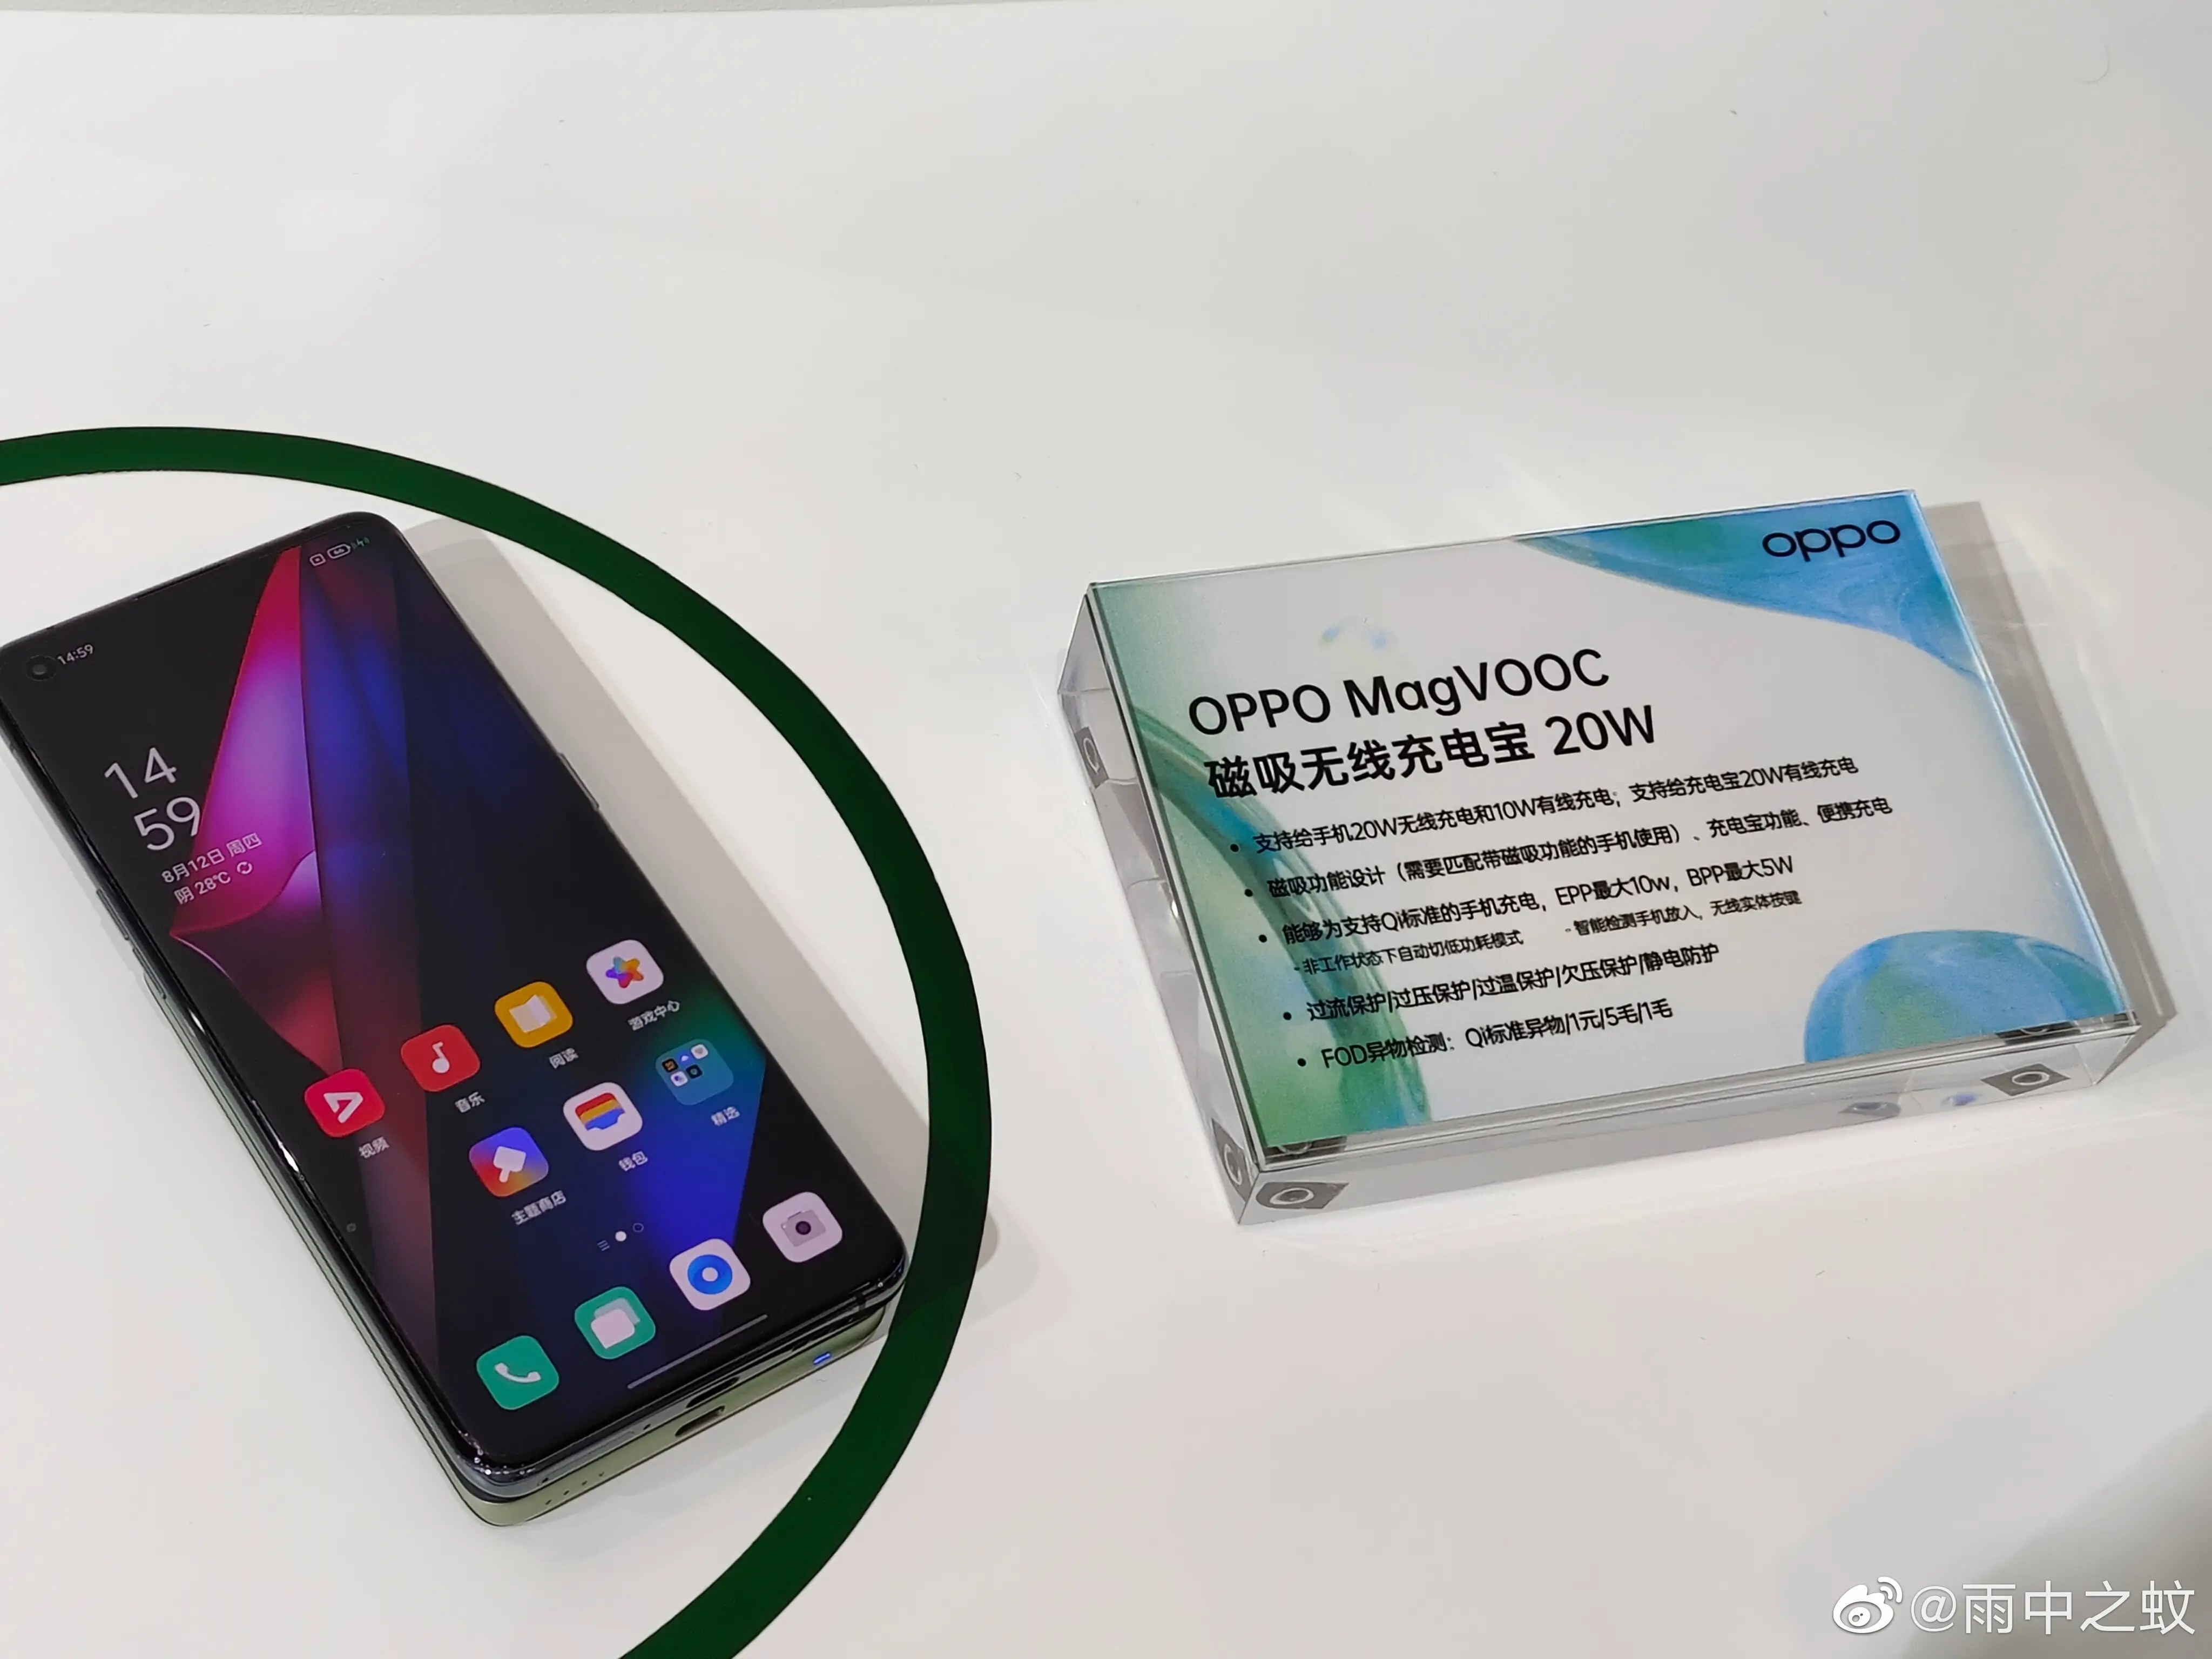 Oppo MagVOOC 40W, 20W, Power Bank, and Air Charging Demoed at Smart Expo 2021